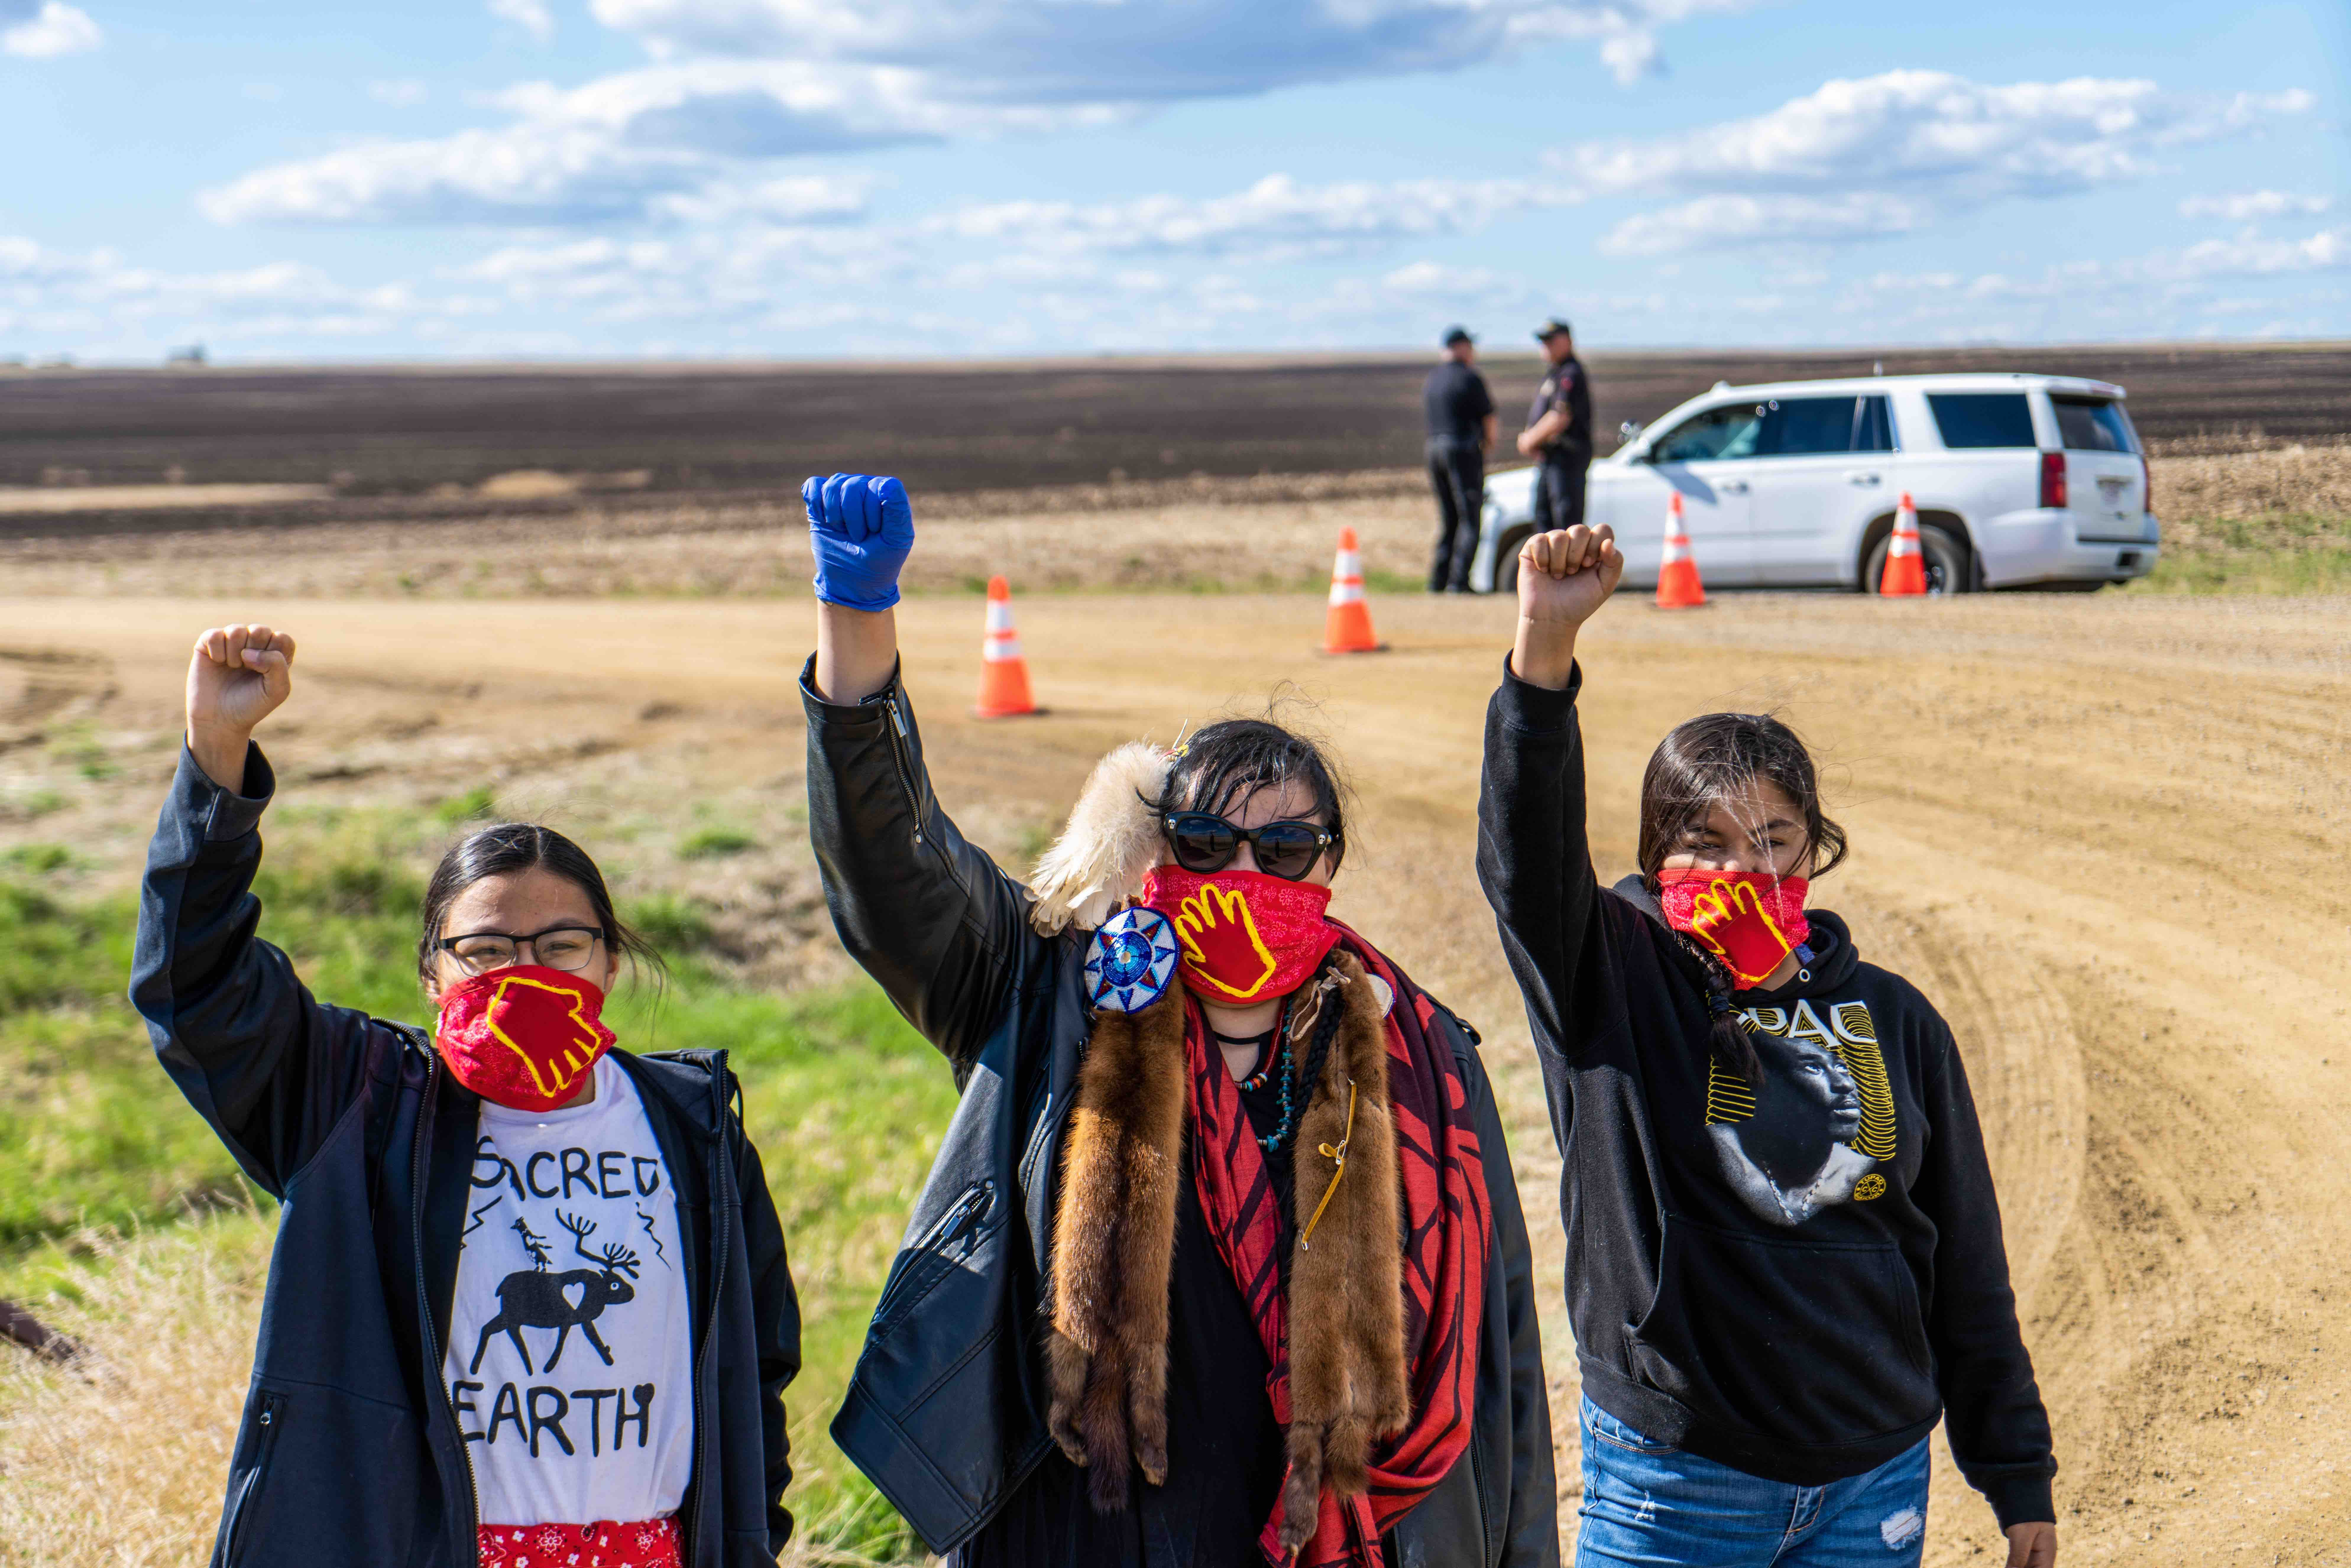 Montana Free Press: Tribal lawsuit adds to Keystone XL hurdles as feds await Supreme Court consideration